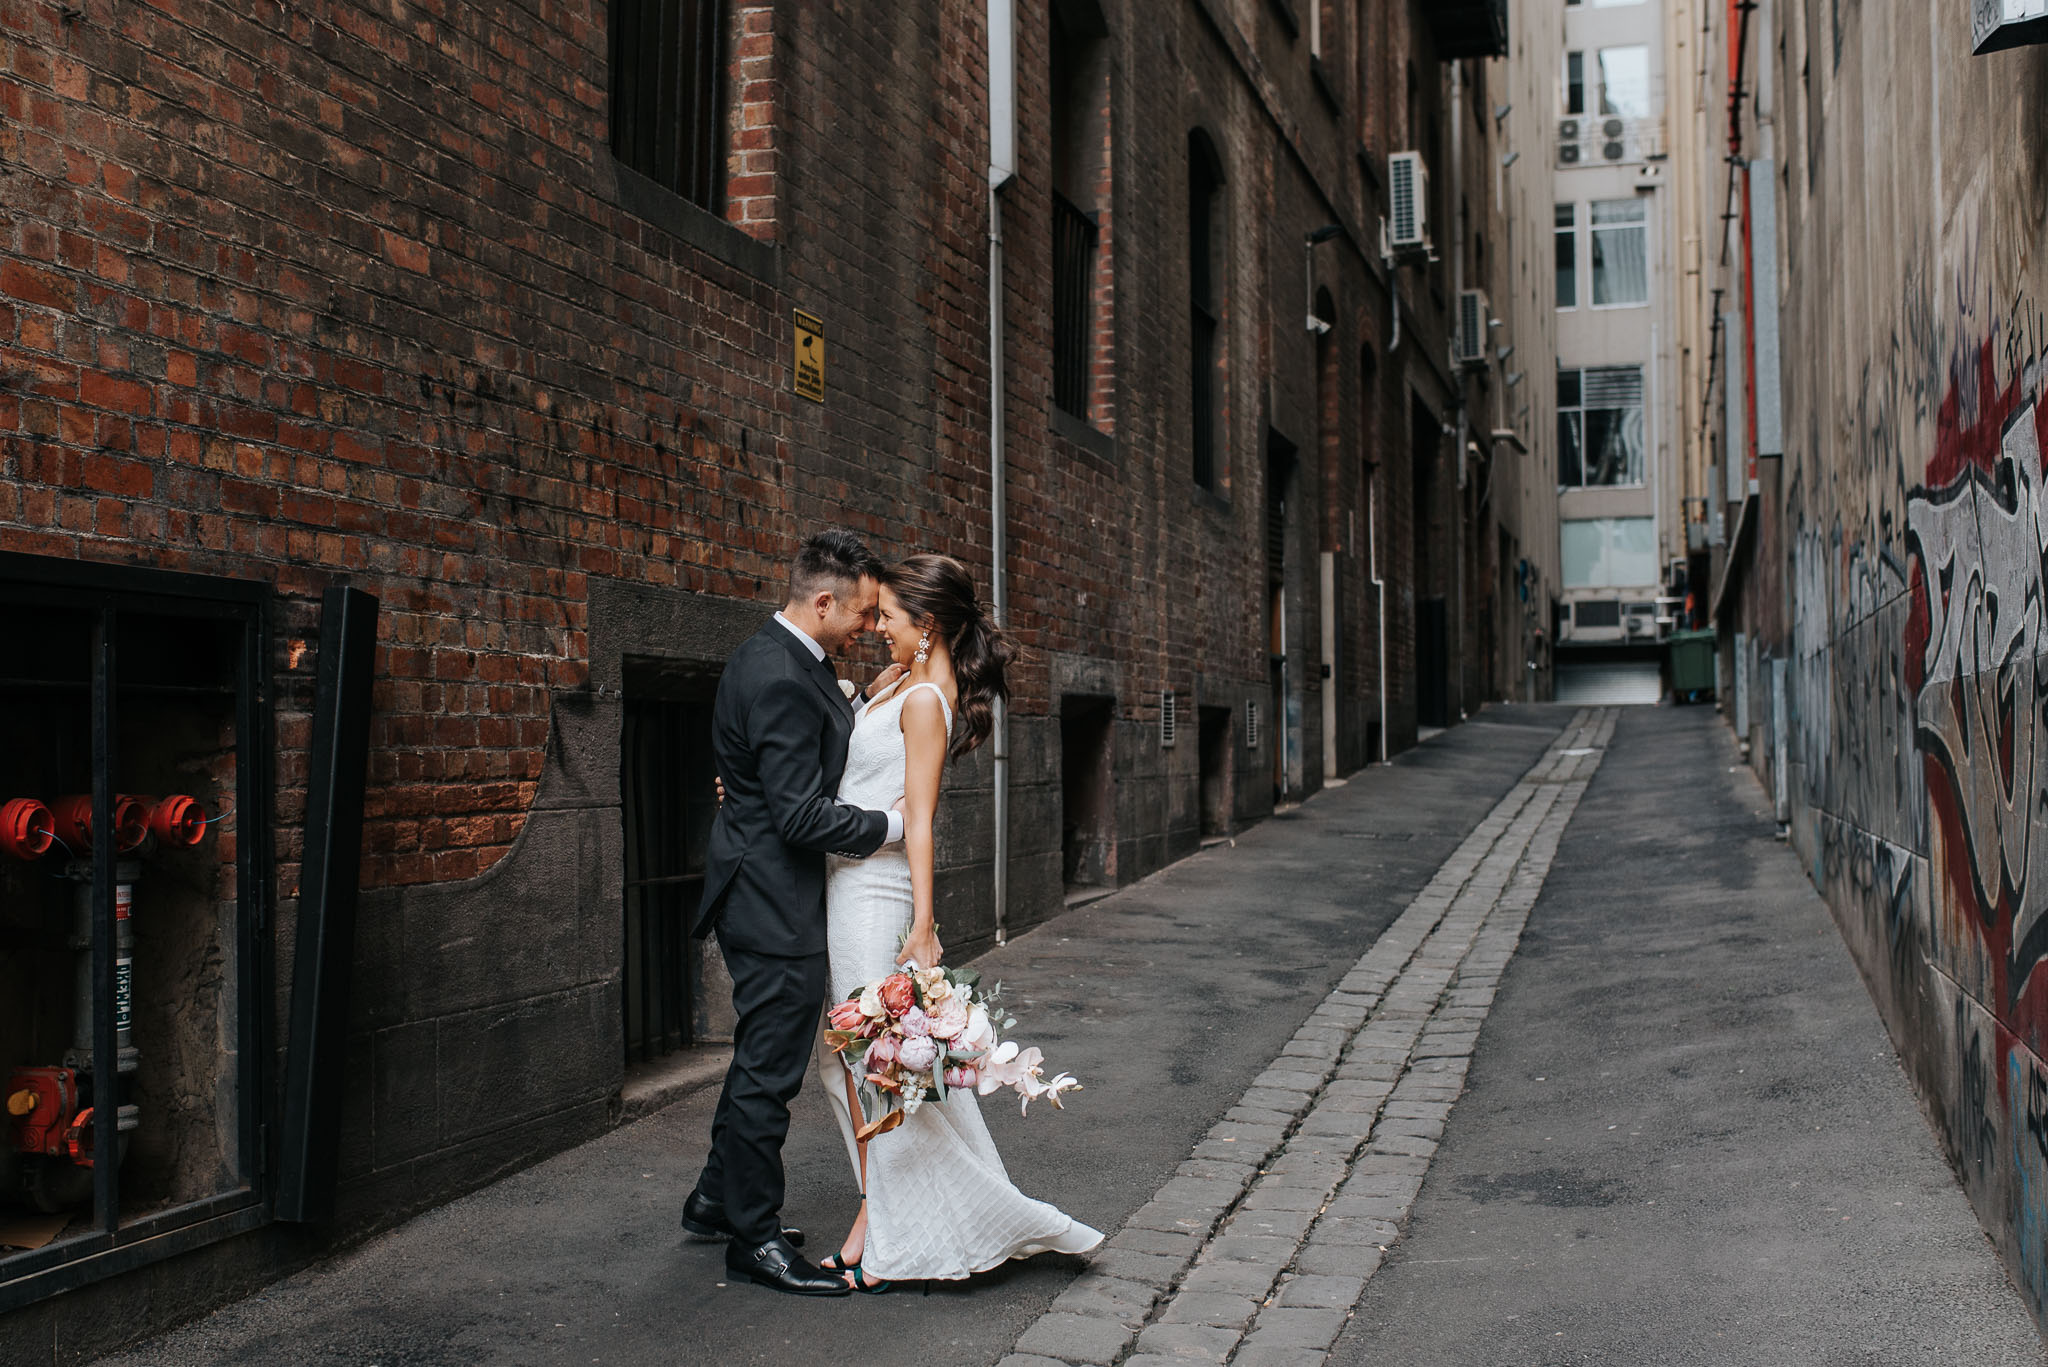 melbourne laneways wedding photography inspiration